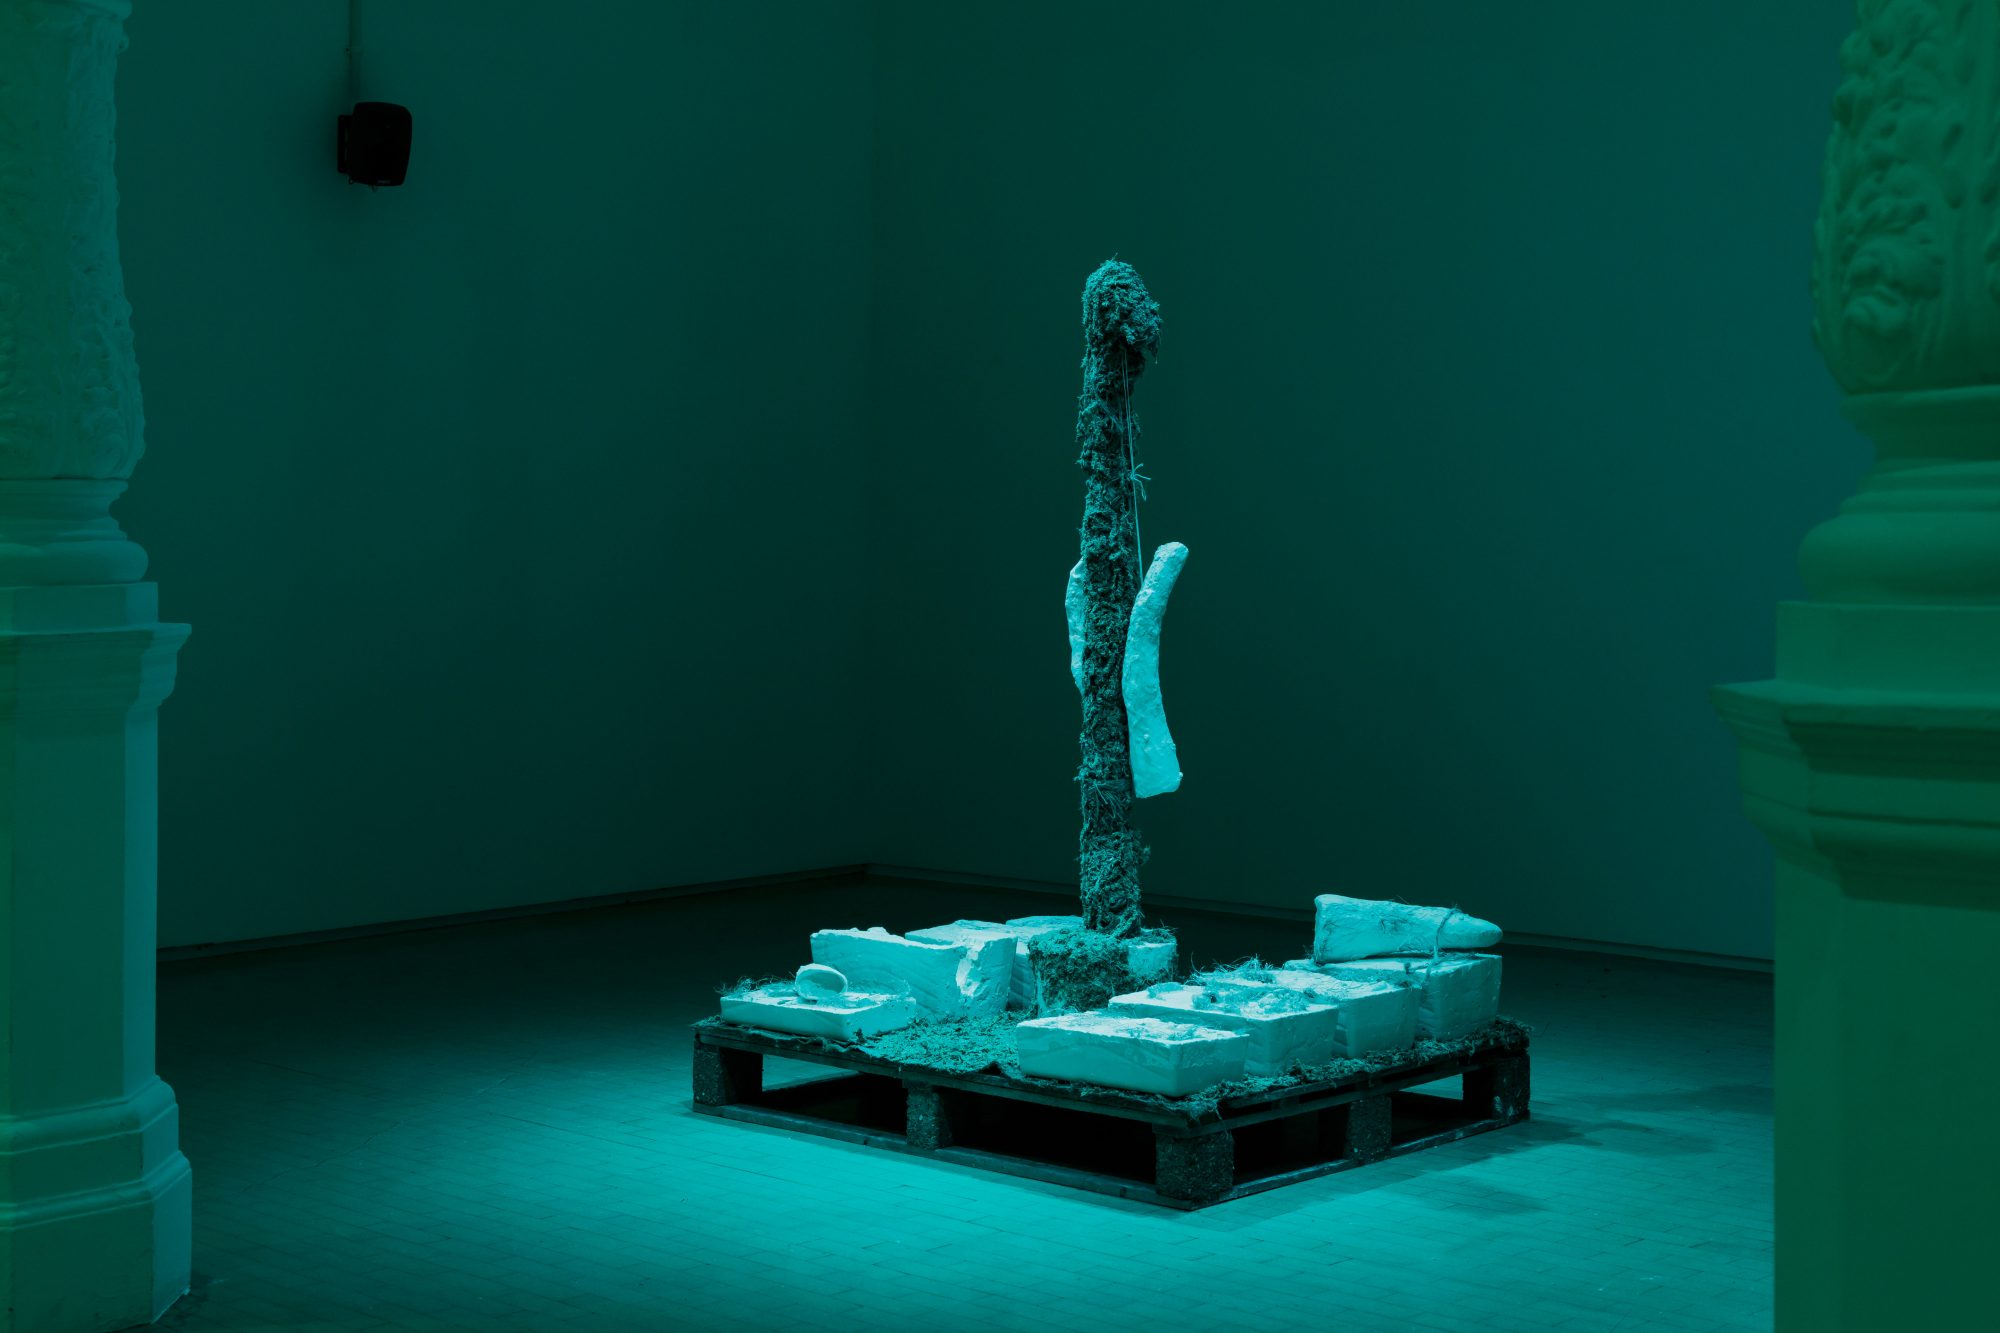 A mixed material sculpture by Ashley Holmes in the middle of a room, bathed in blue light.